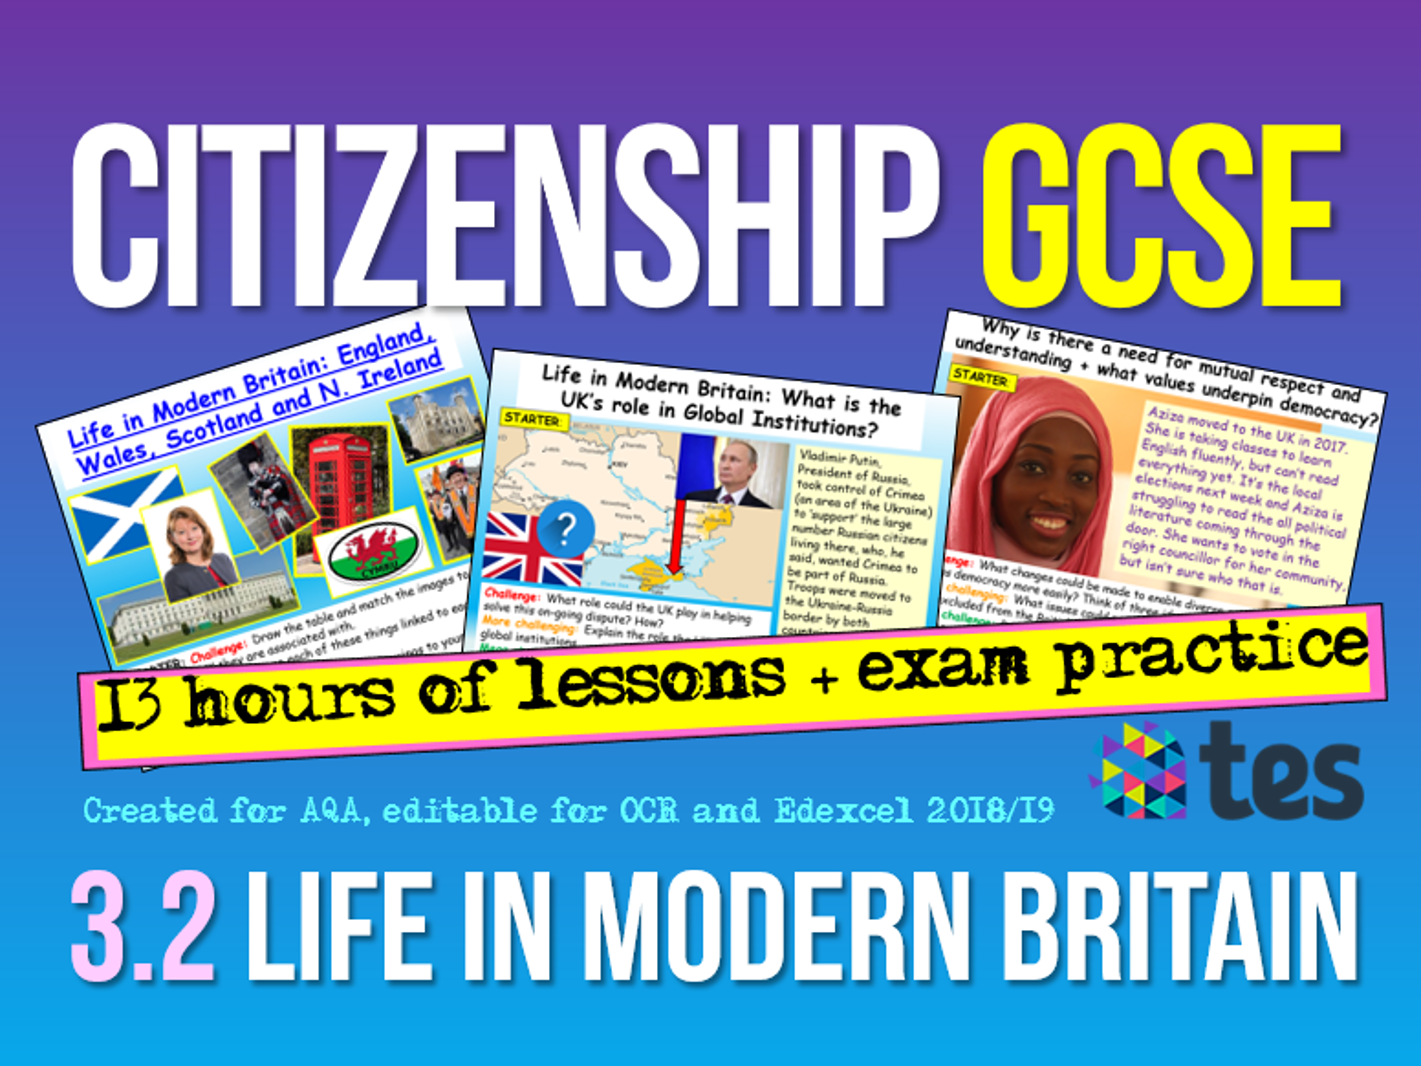 Citizenship GCSE 9-1 Life in Modern Britain